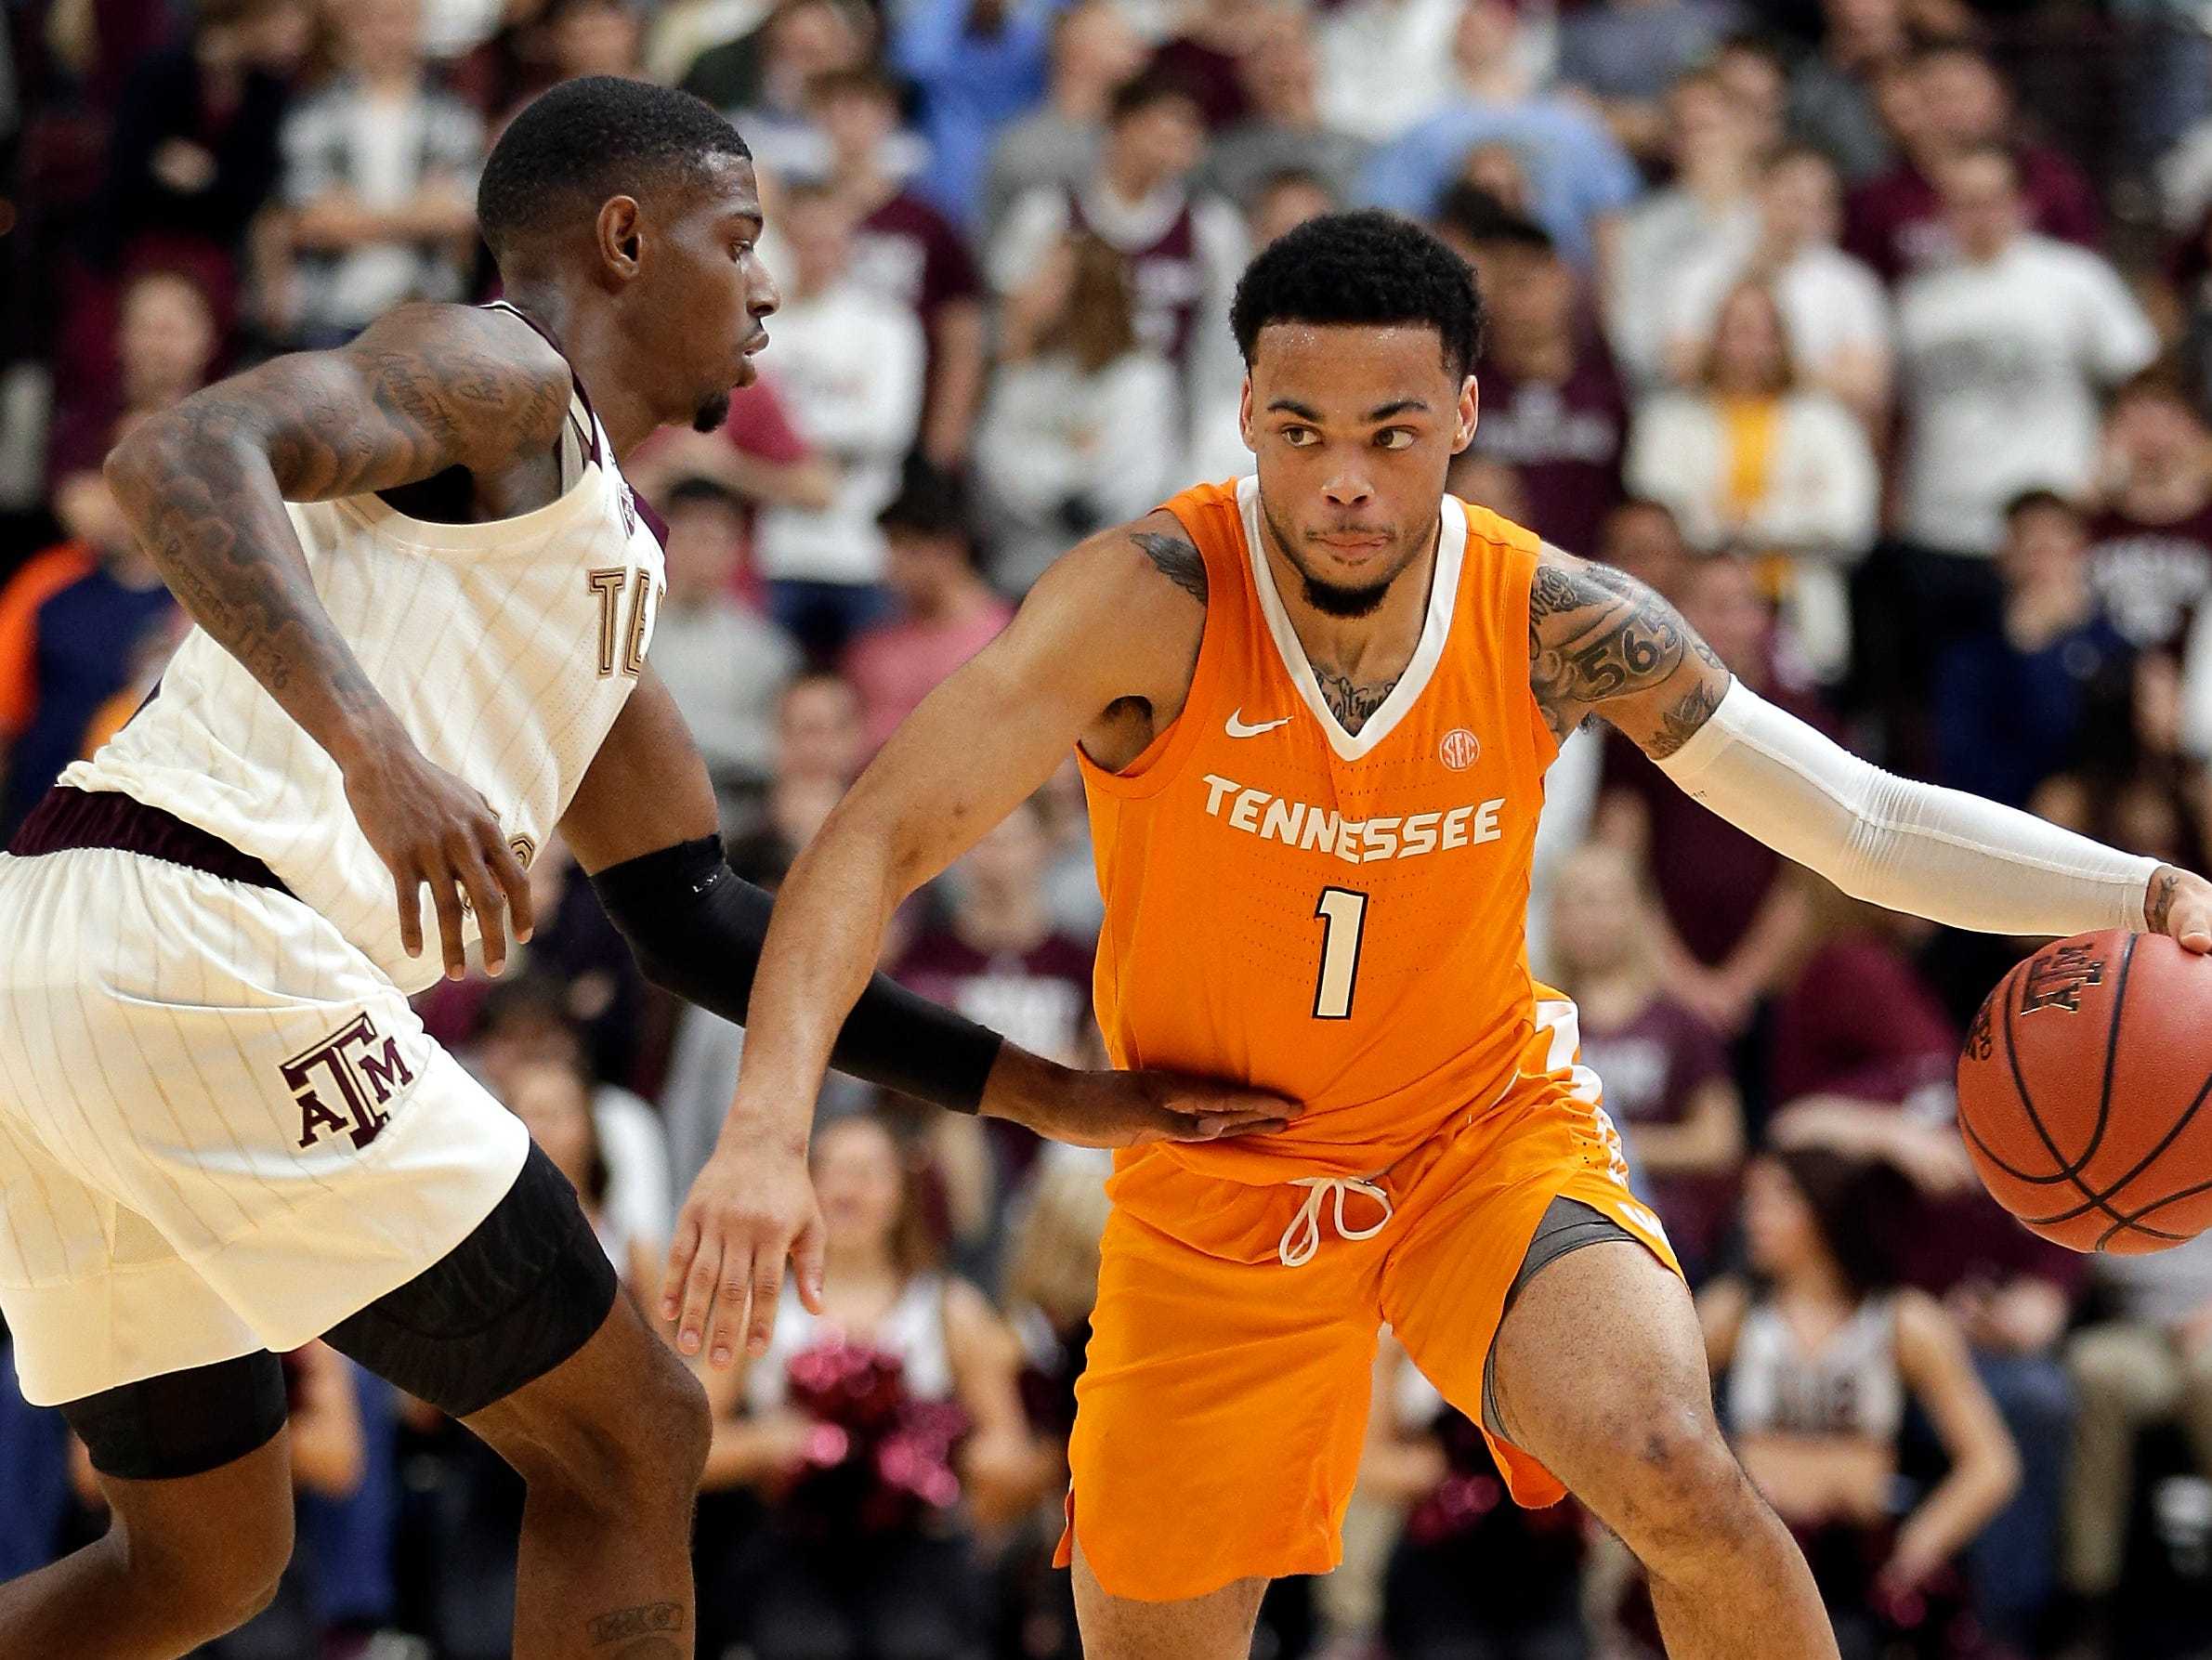 Tennessee guard Lamonte Turner (1) drives around Texas A&M guard Jay Jay Chandler, left, during the second half of an NCAA college basketball game Saturday, Feb. 2, 2019, in College Station, Texas.